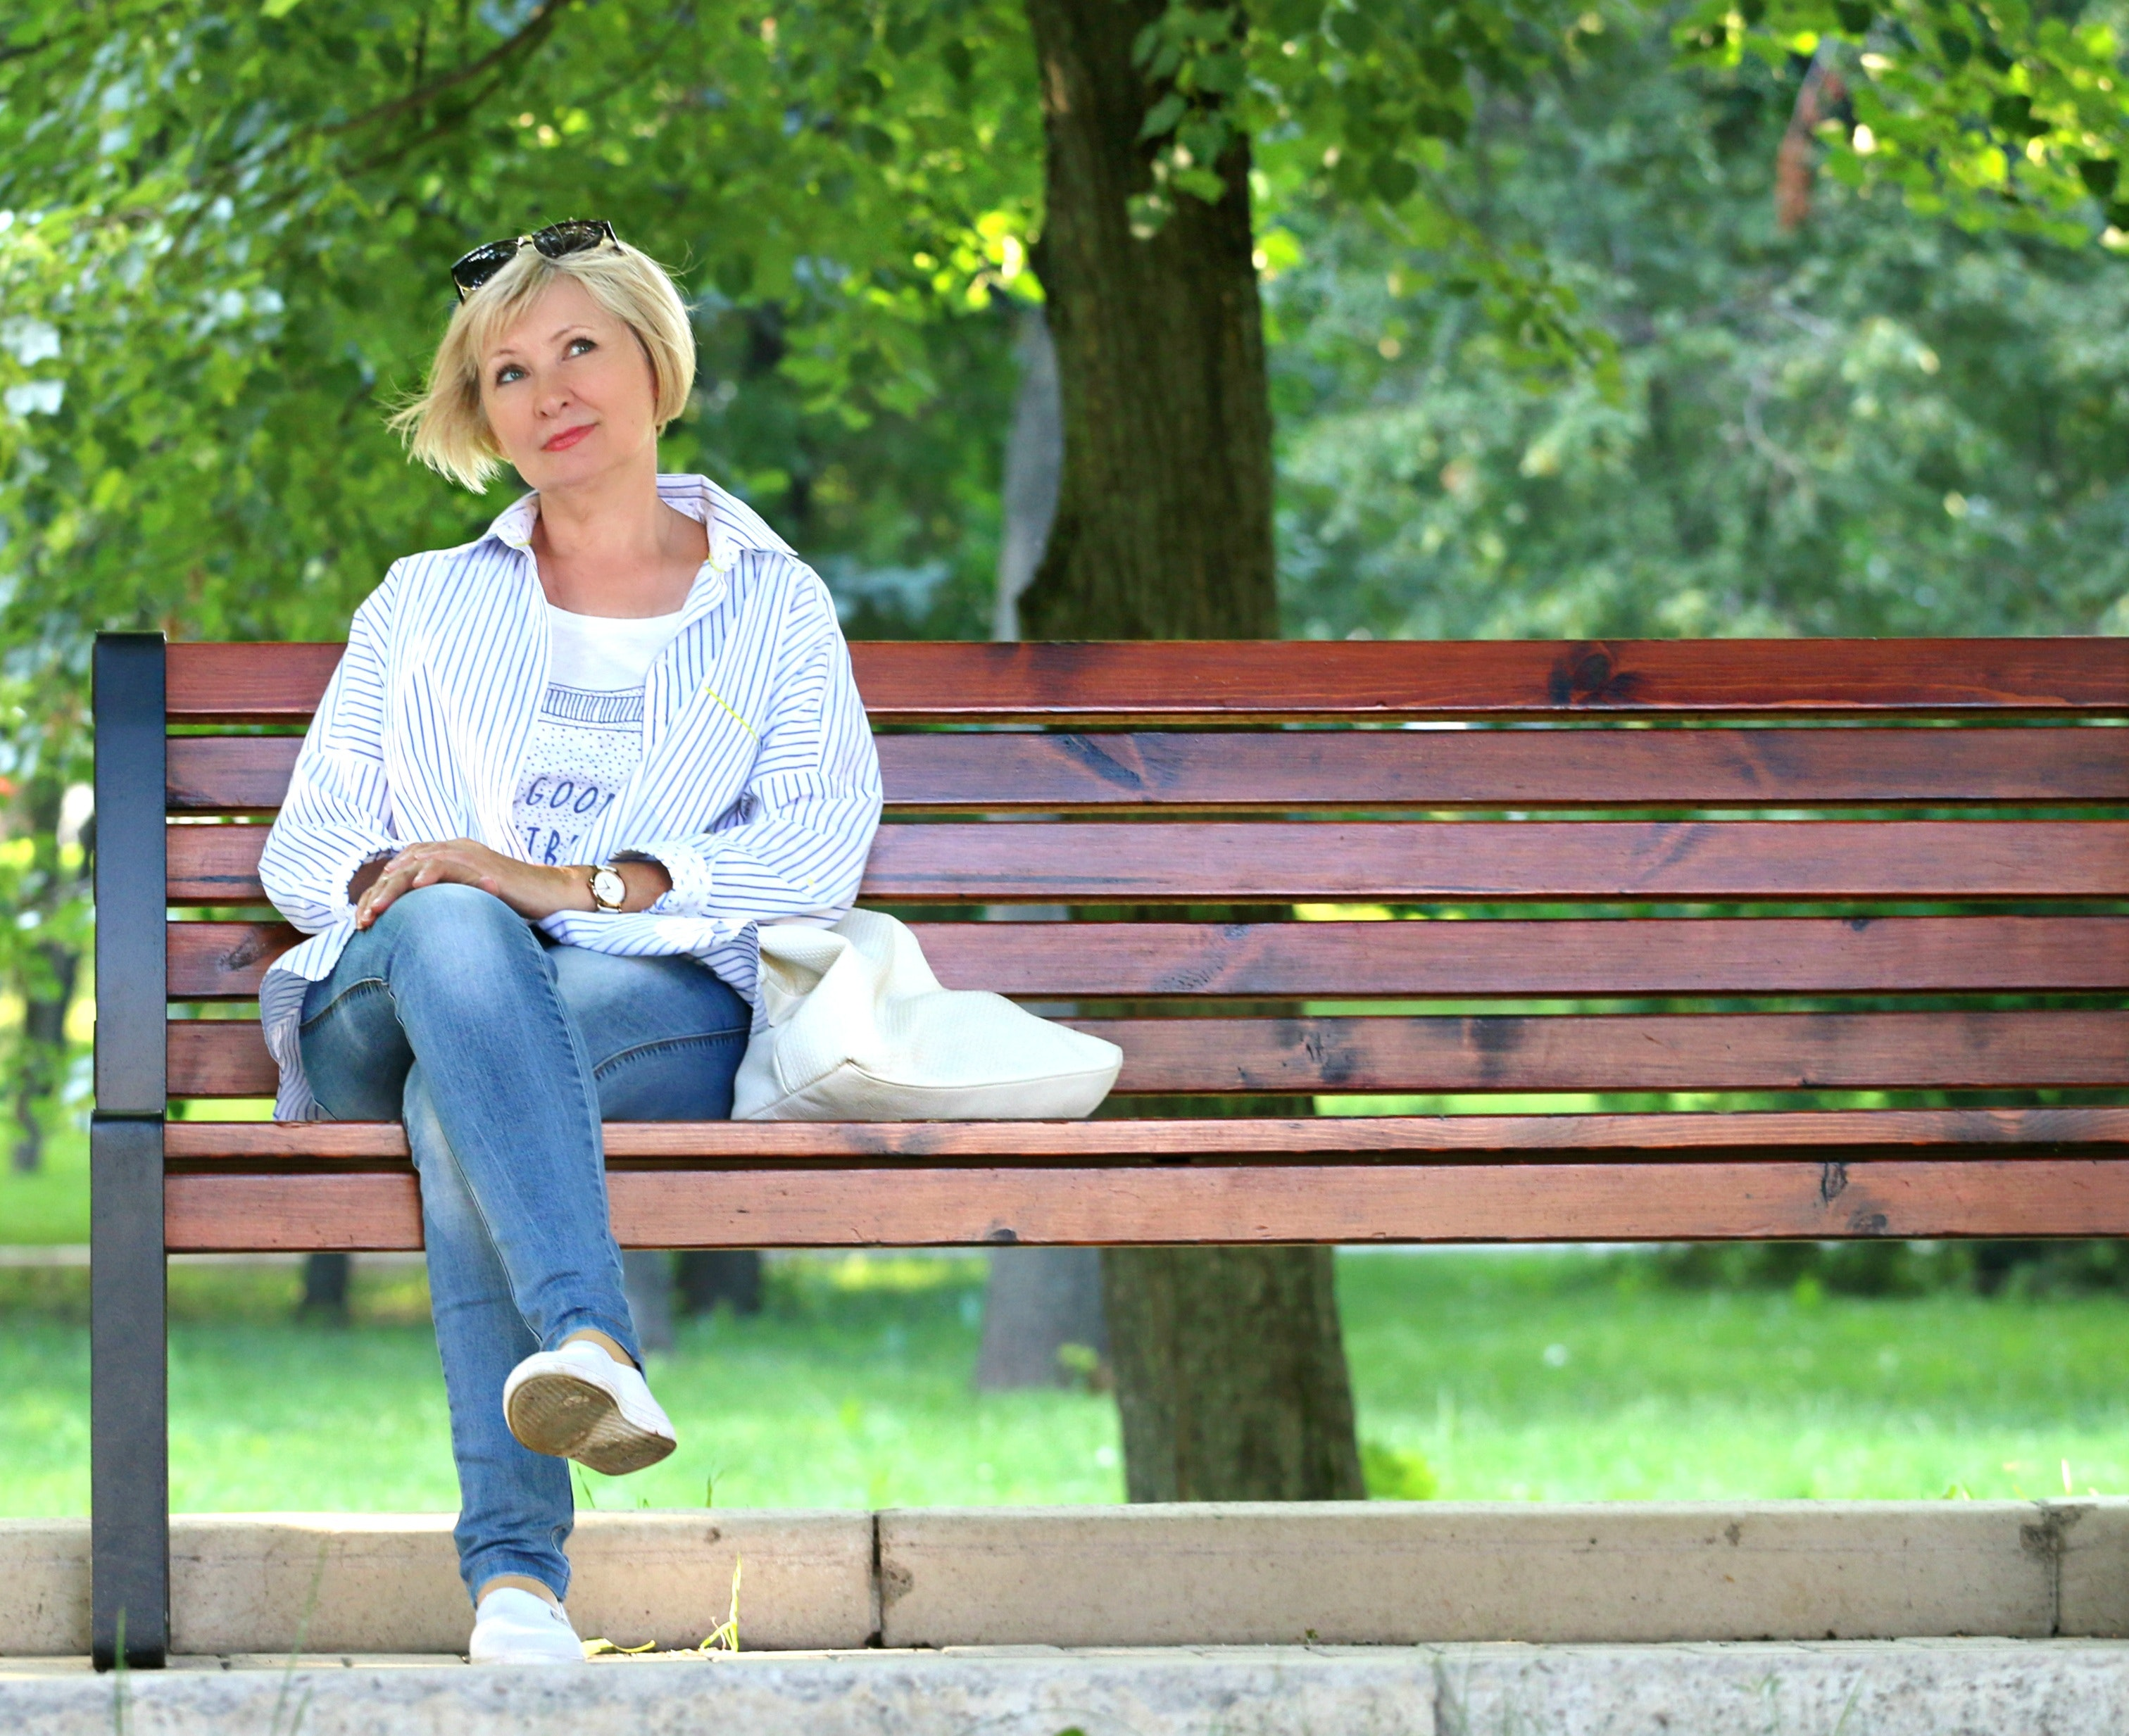 adult-beautiful-bench-157622